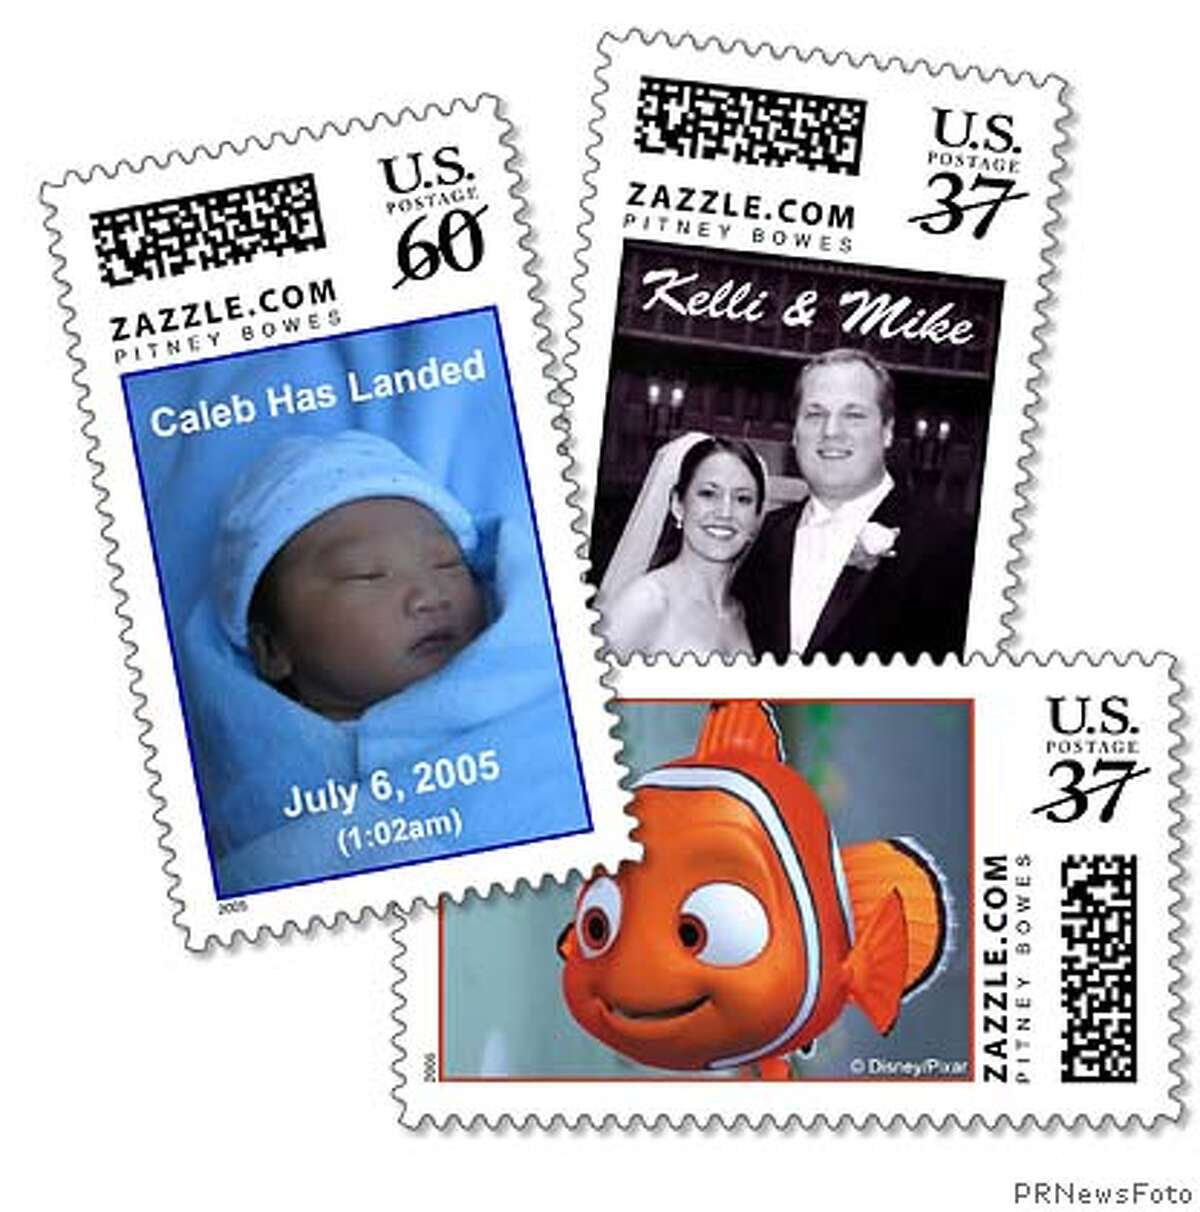 Licensed or personal images can now be turned into customized stamps at www.zazzle.com. (PRNewsFoto) *XPRN XPFF* SEE STORY 20050718/NYM076, NY (157934) Media contact: Matthew Broder Pitney Bowes Inc. +1-203-351-6347, matthew.broder@pb.com